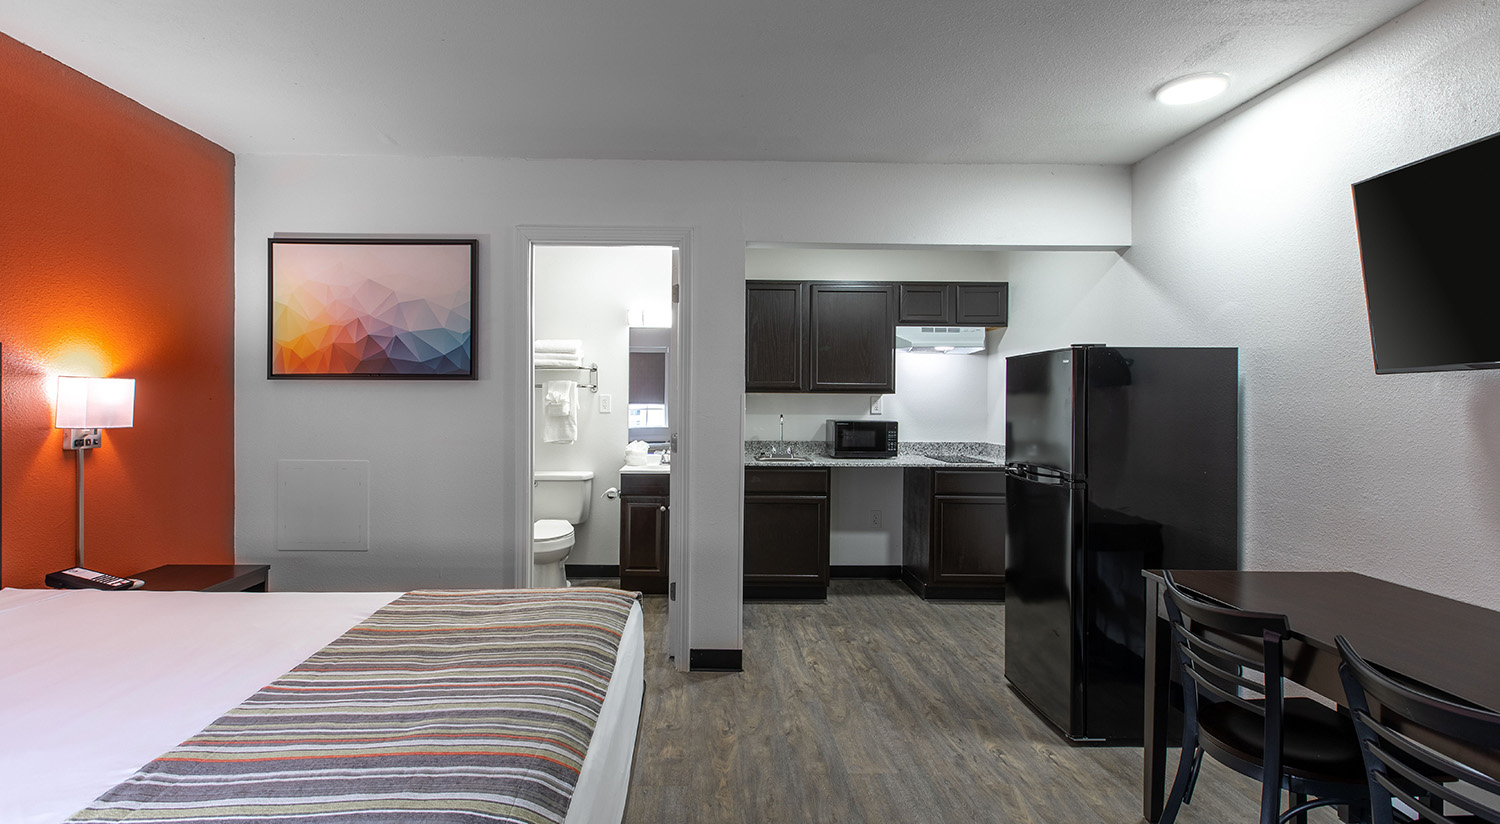 IDEAL BUDGET-FRIENDLY ACCOMMODATIONS FOR YOUR HUB CITY GETAWAY